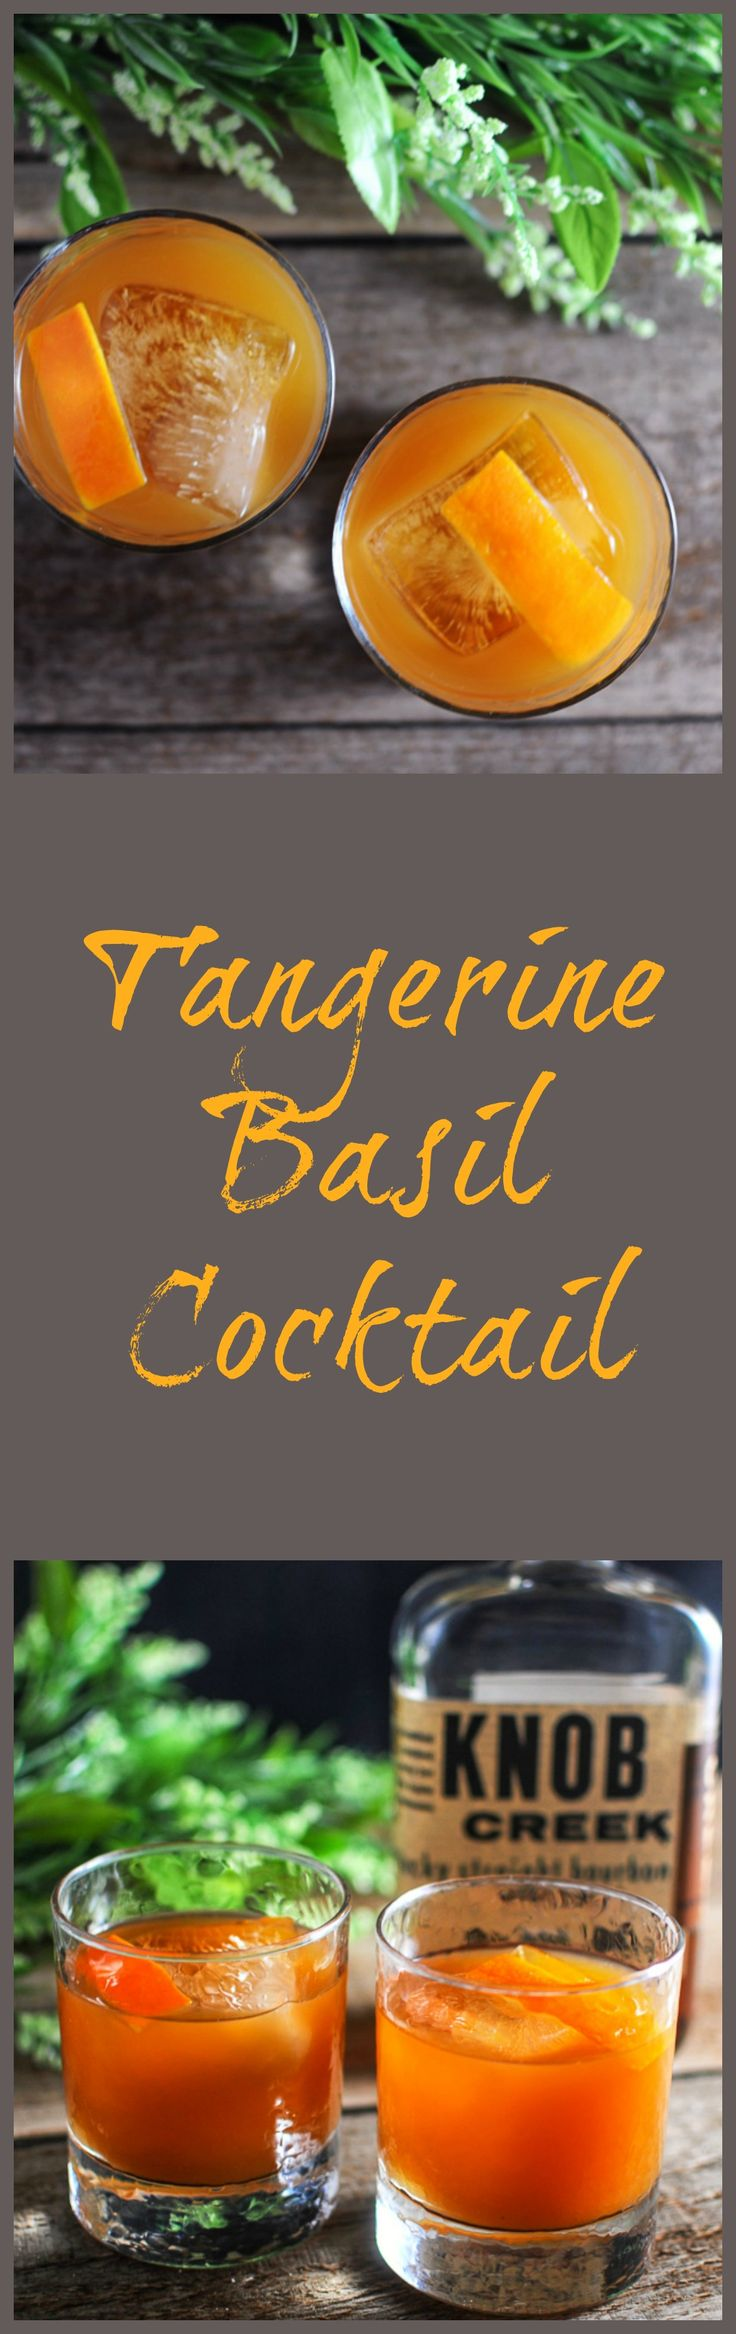 Sweet and tangy tangerine with a sweet basil infused simple syrup adds a fresh citrus and herb burst to this rich bourbon sipping cocktail.